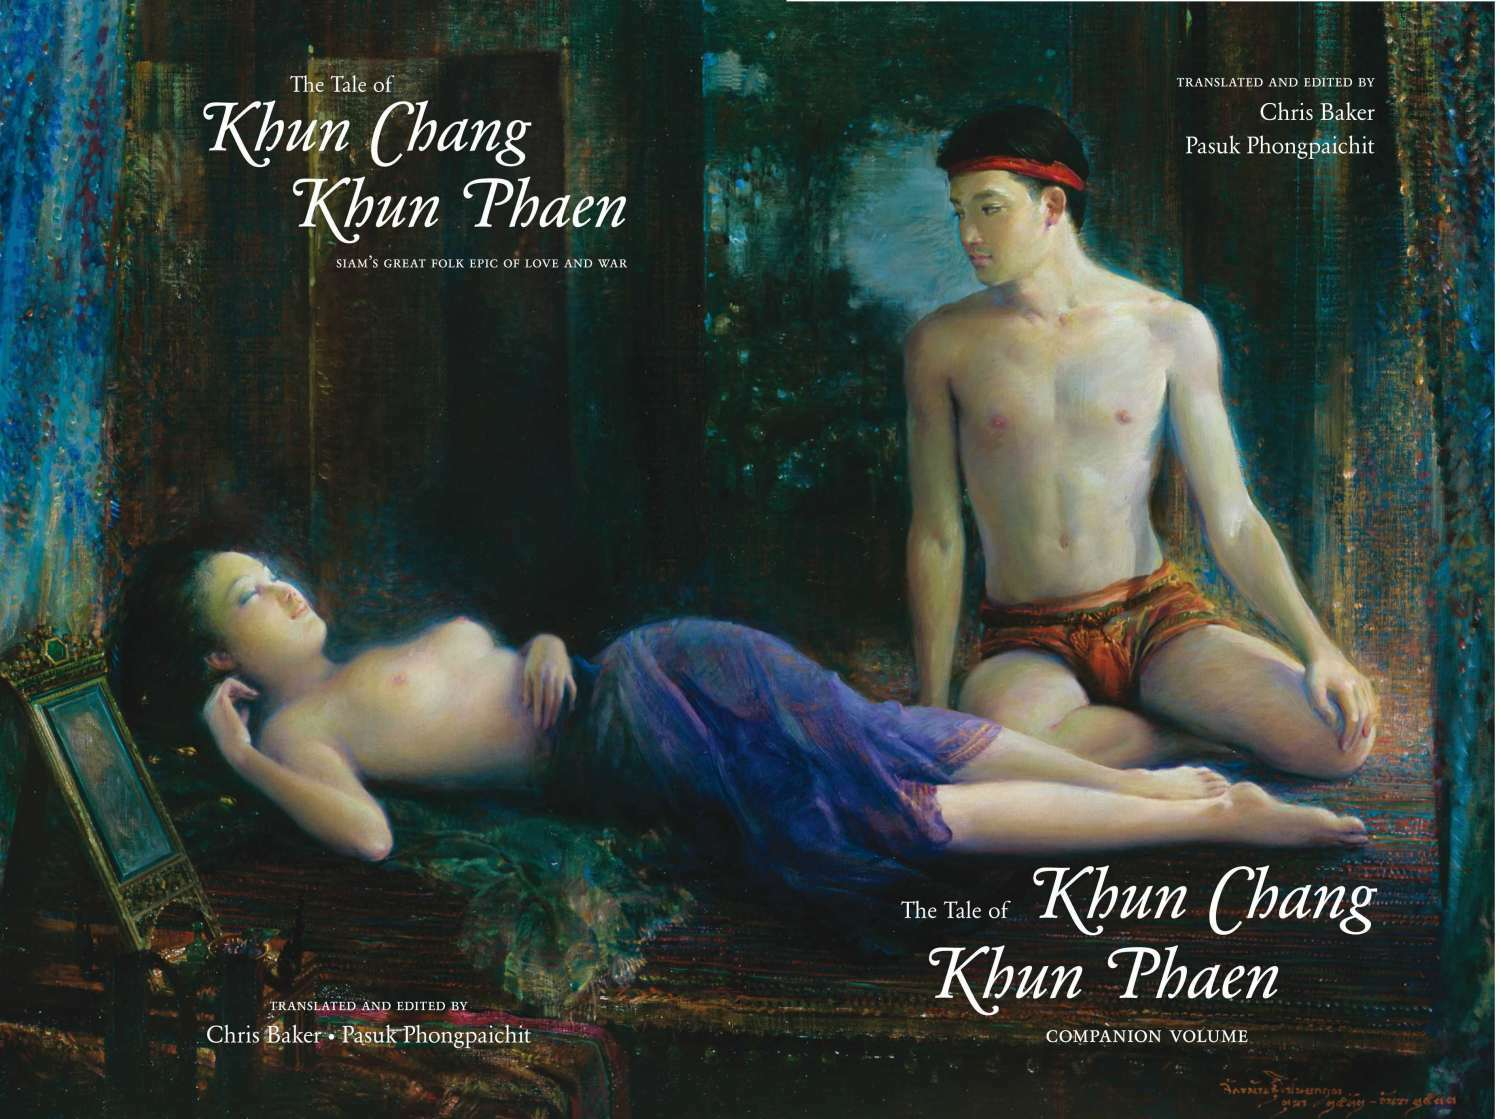 Introducing The Tale of Khun Chang Khun Phaen, Siam's folk epic of love and war 2.00-3.30 PM, Tuesday 27 September...